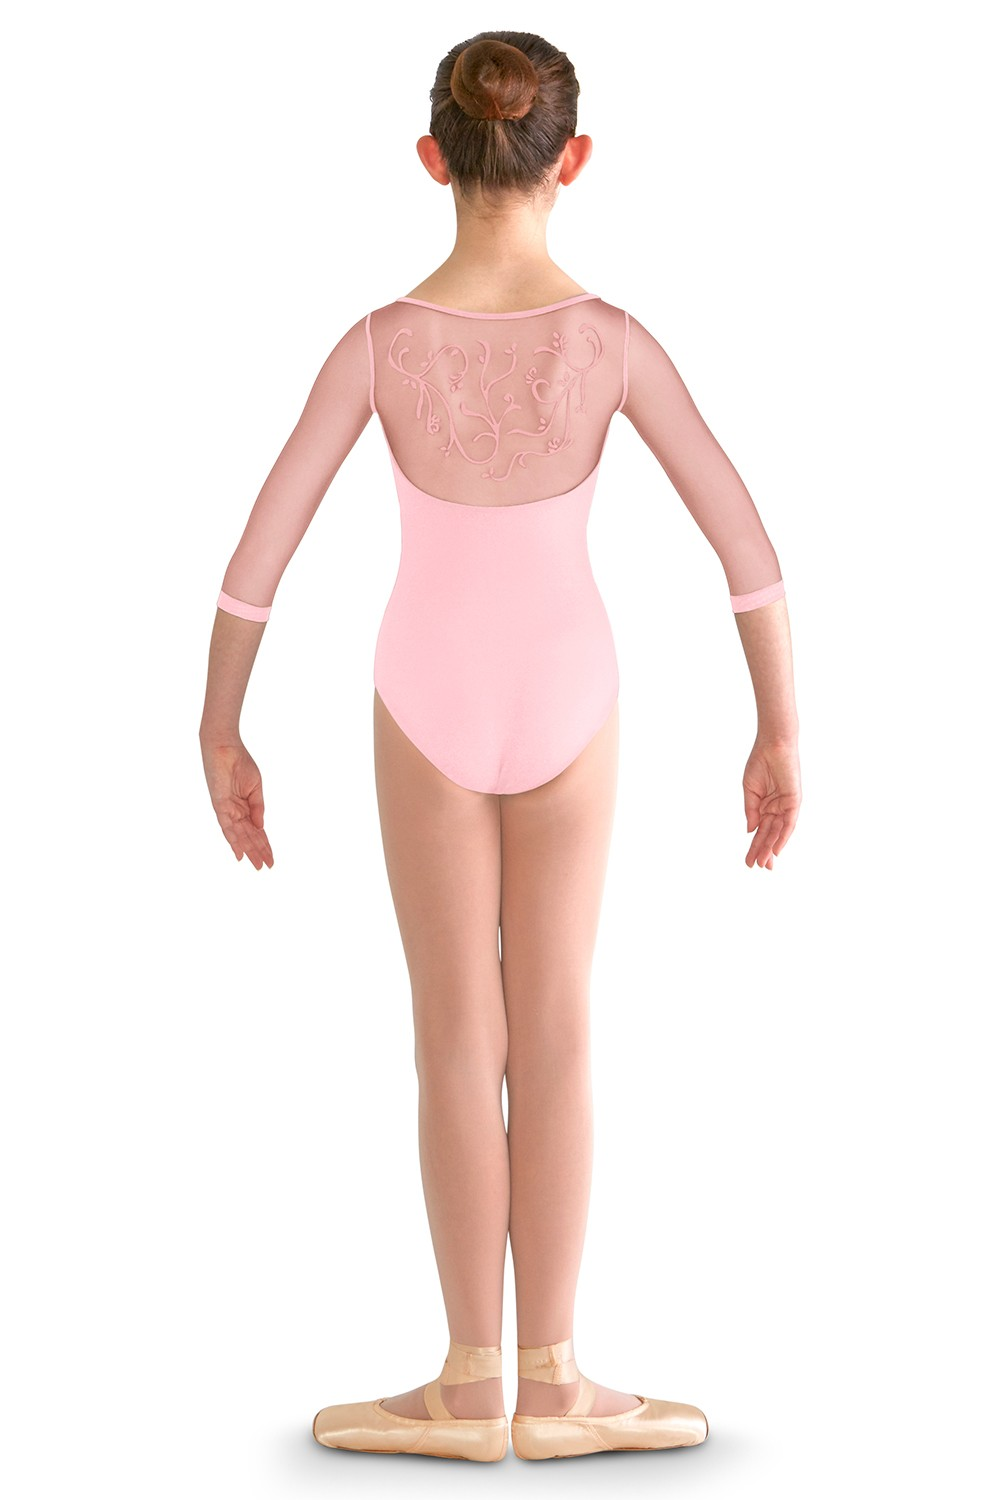 Vine Flock Back 3/4 Sleeve Children's Dance Leotards